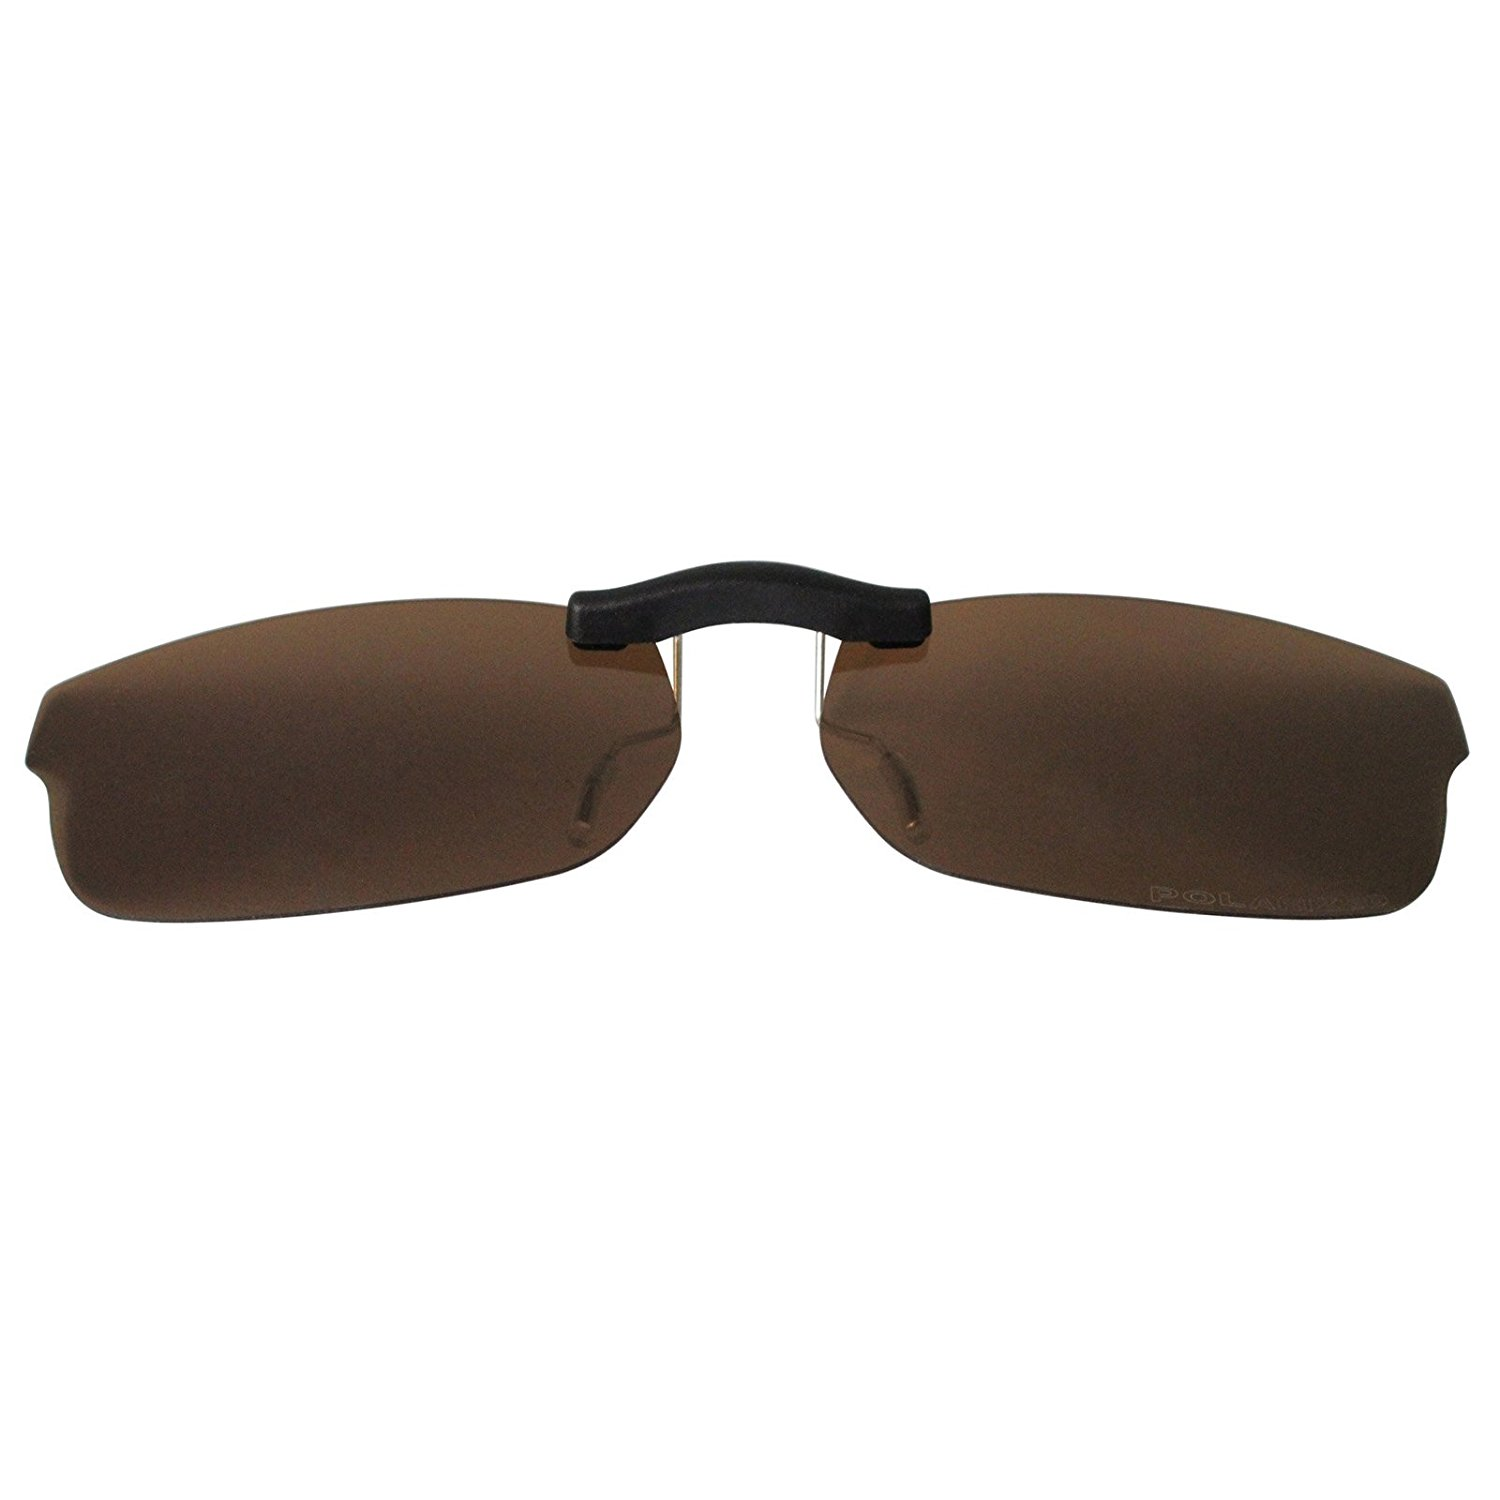 5bfc223ebb8e Get Quotations · Custom Polarized Clip On Sunglasses for Ray-Ban RB5187  (RX5187) 52x16(No